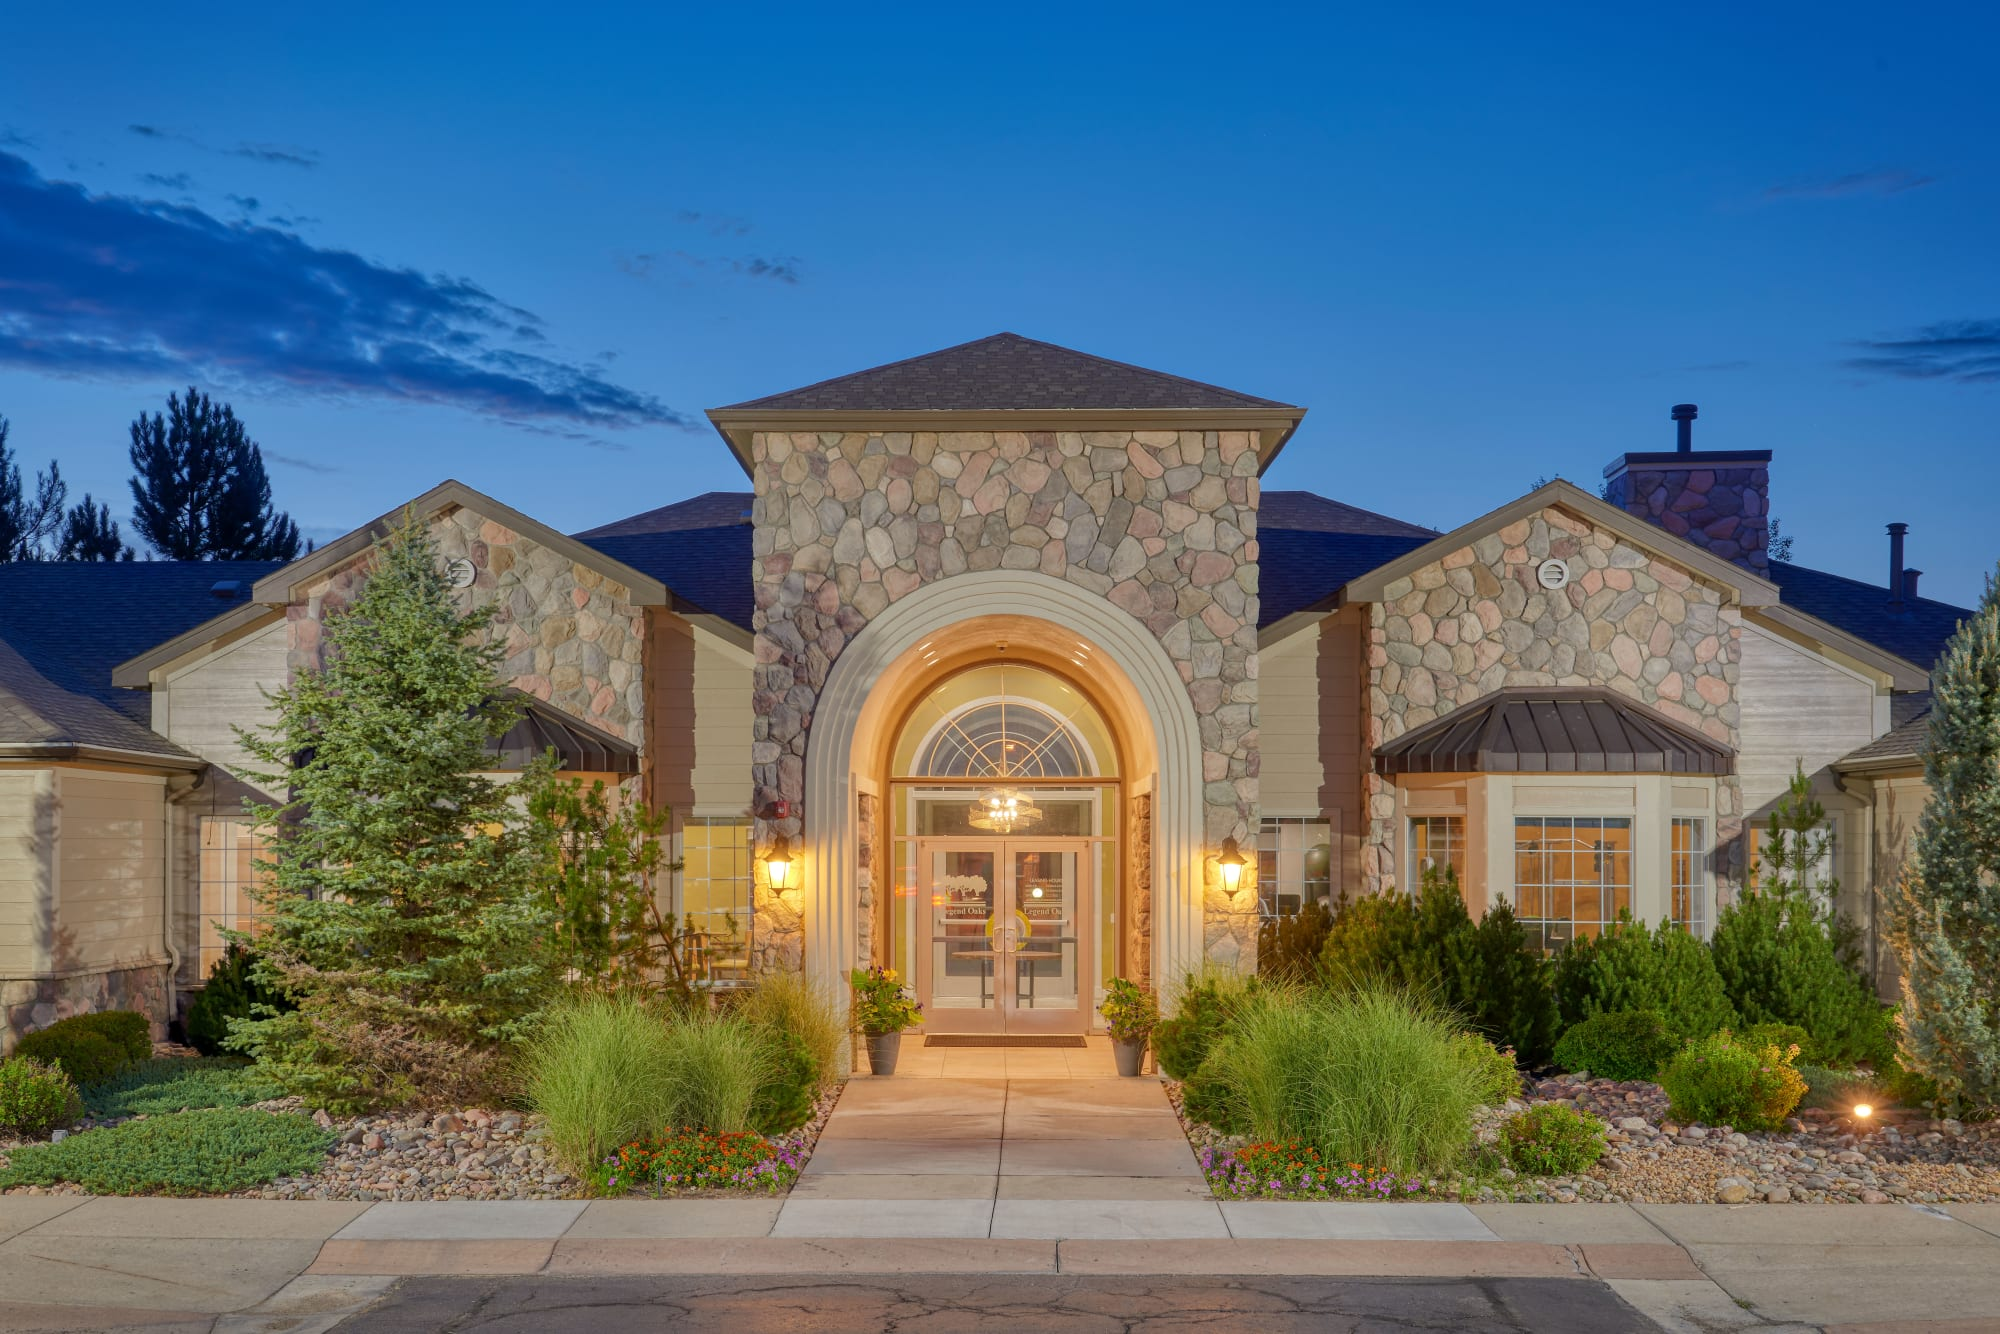 Exterior view of leasing office entrance at Legend Oaks Apartments in Aurora, Colorado